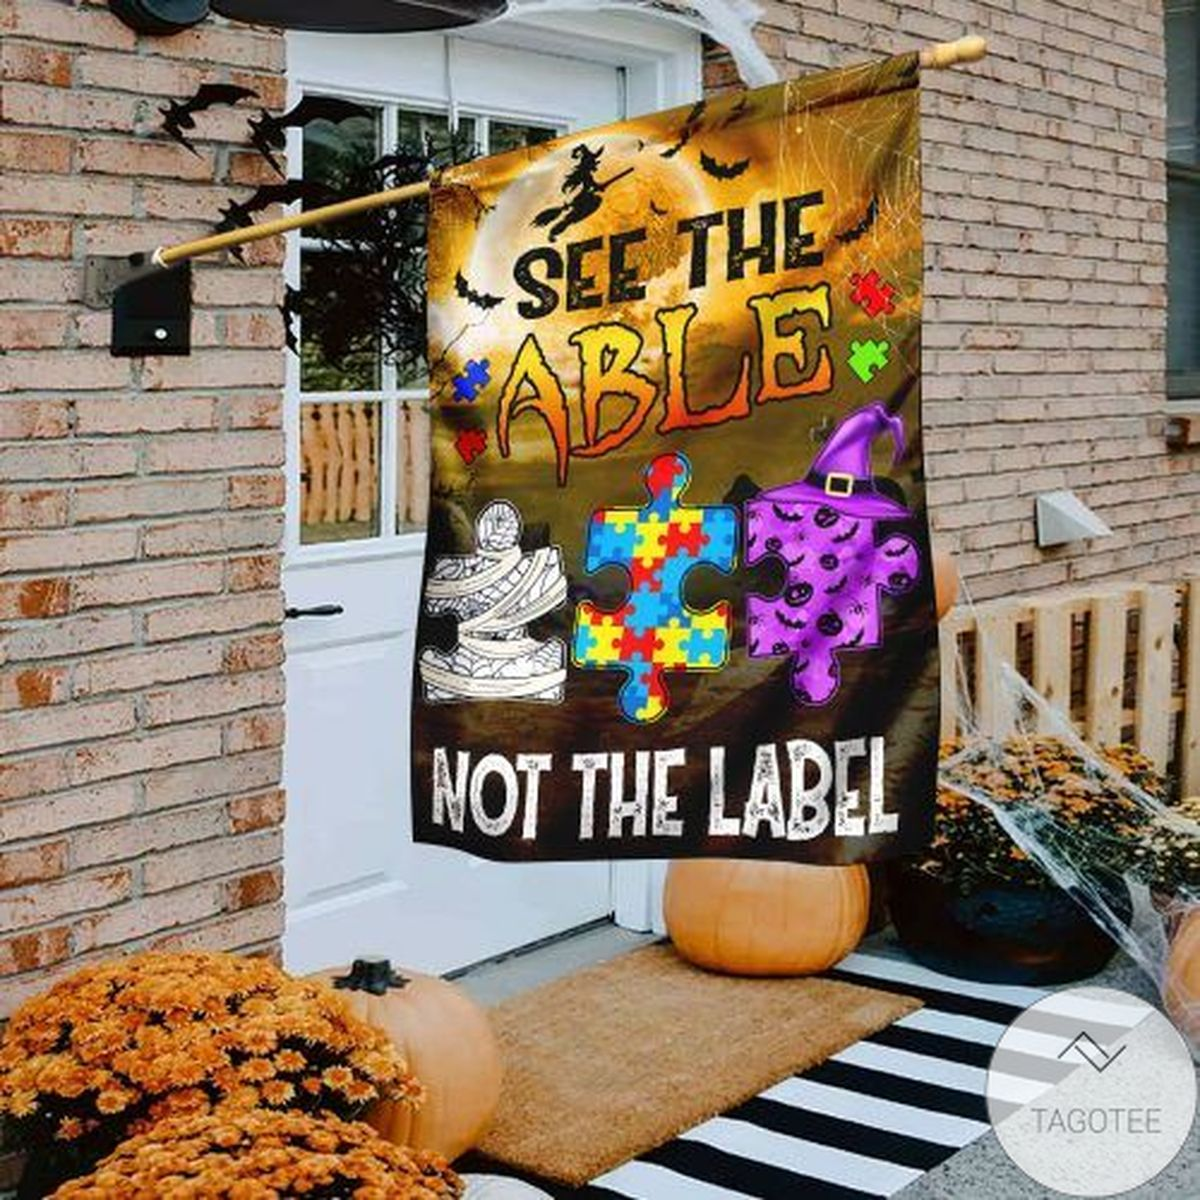 Autism Awareness See The Able Not The Label Halloween Flag